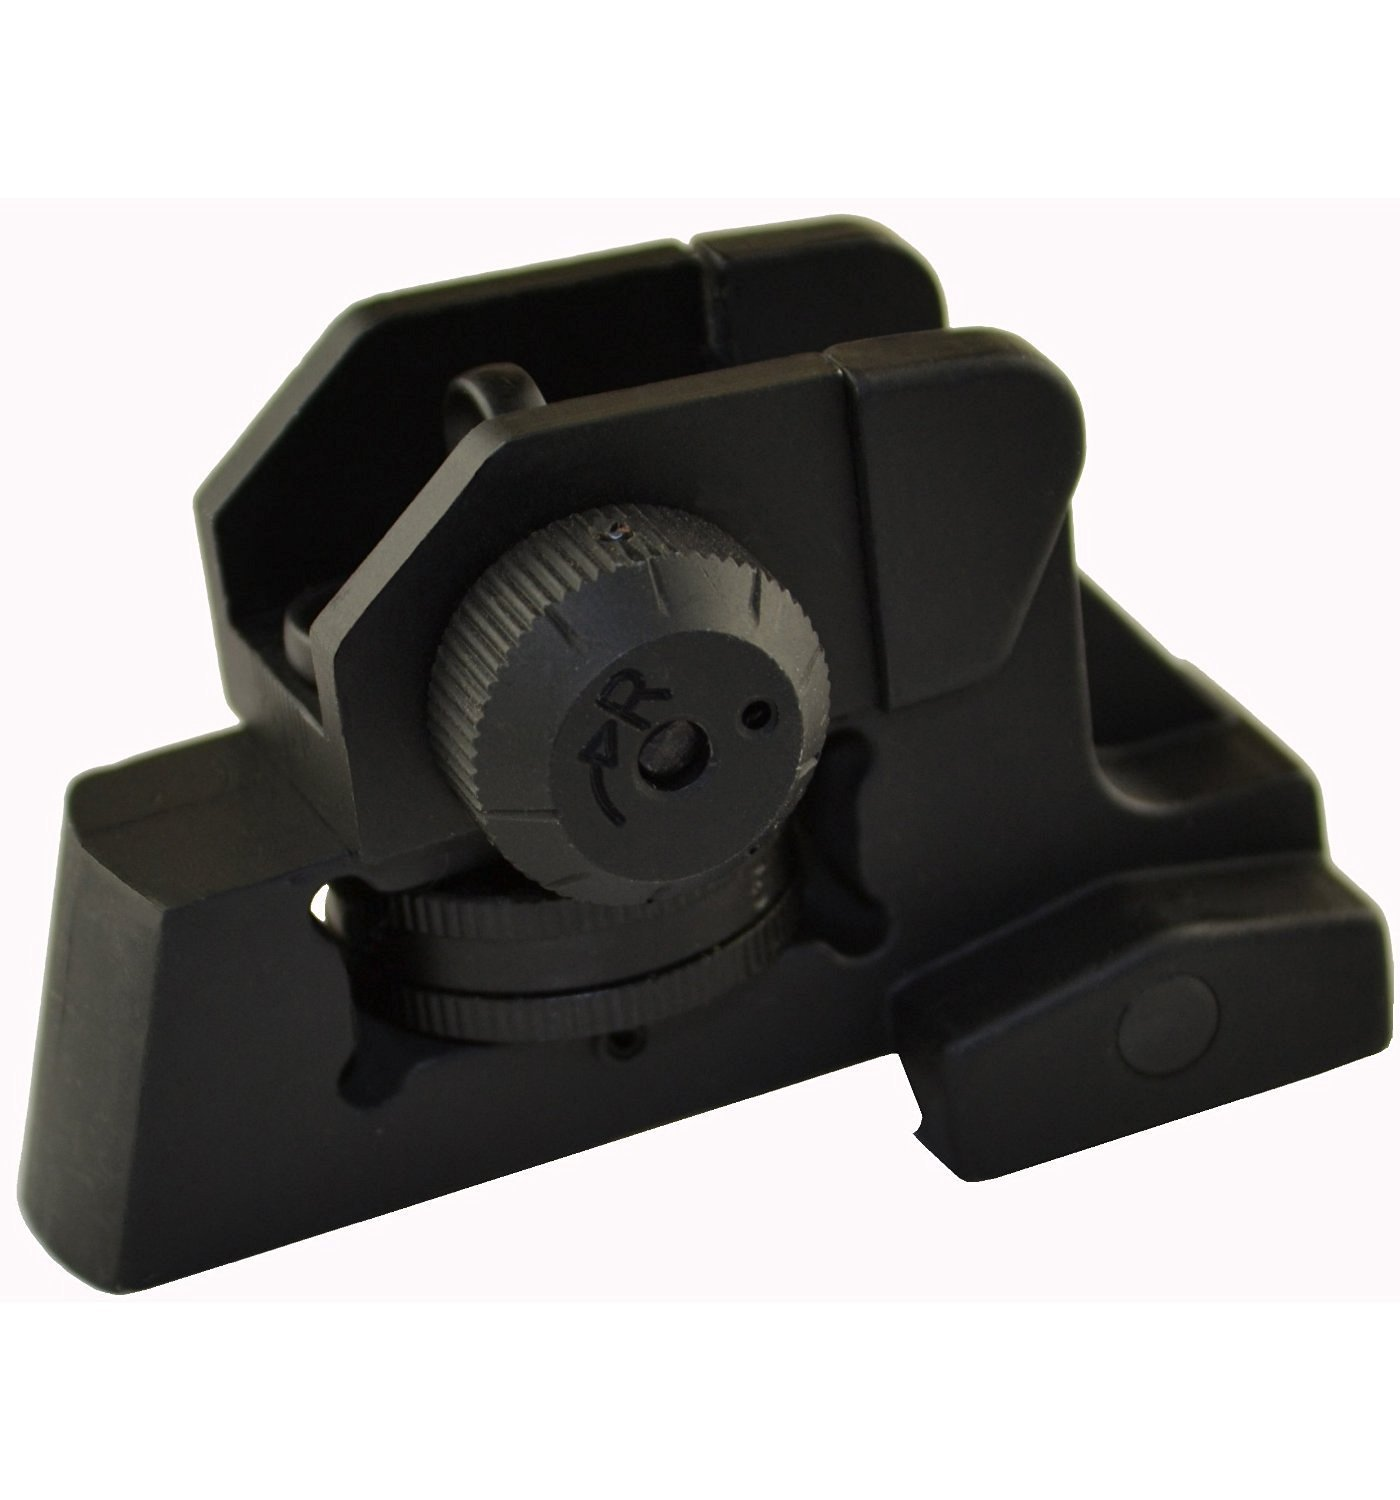 MUDCAT Outdoors Iron Sights Match Grade Model 4/15 Rear & High Profile Front Sight Gas Block, DPMS Oracle by GBO (Image #3)